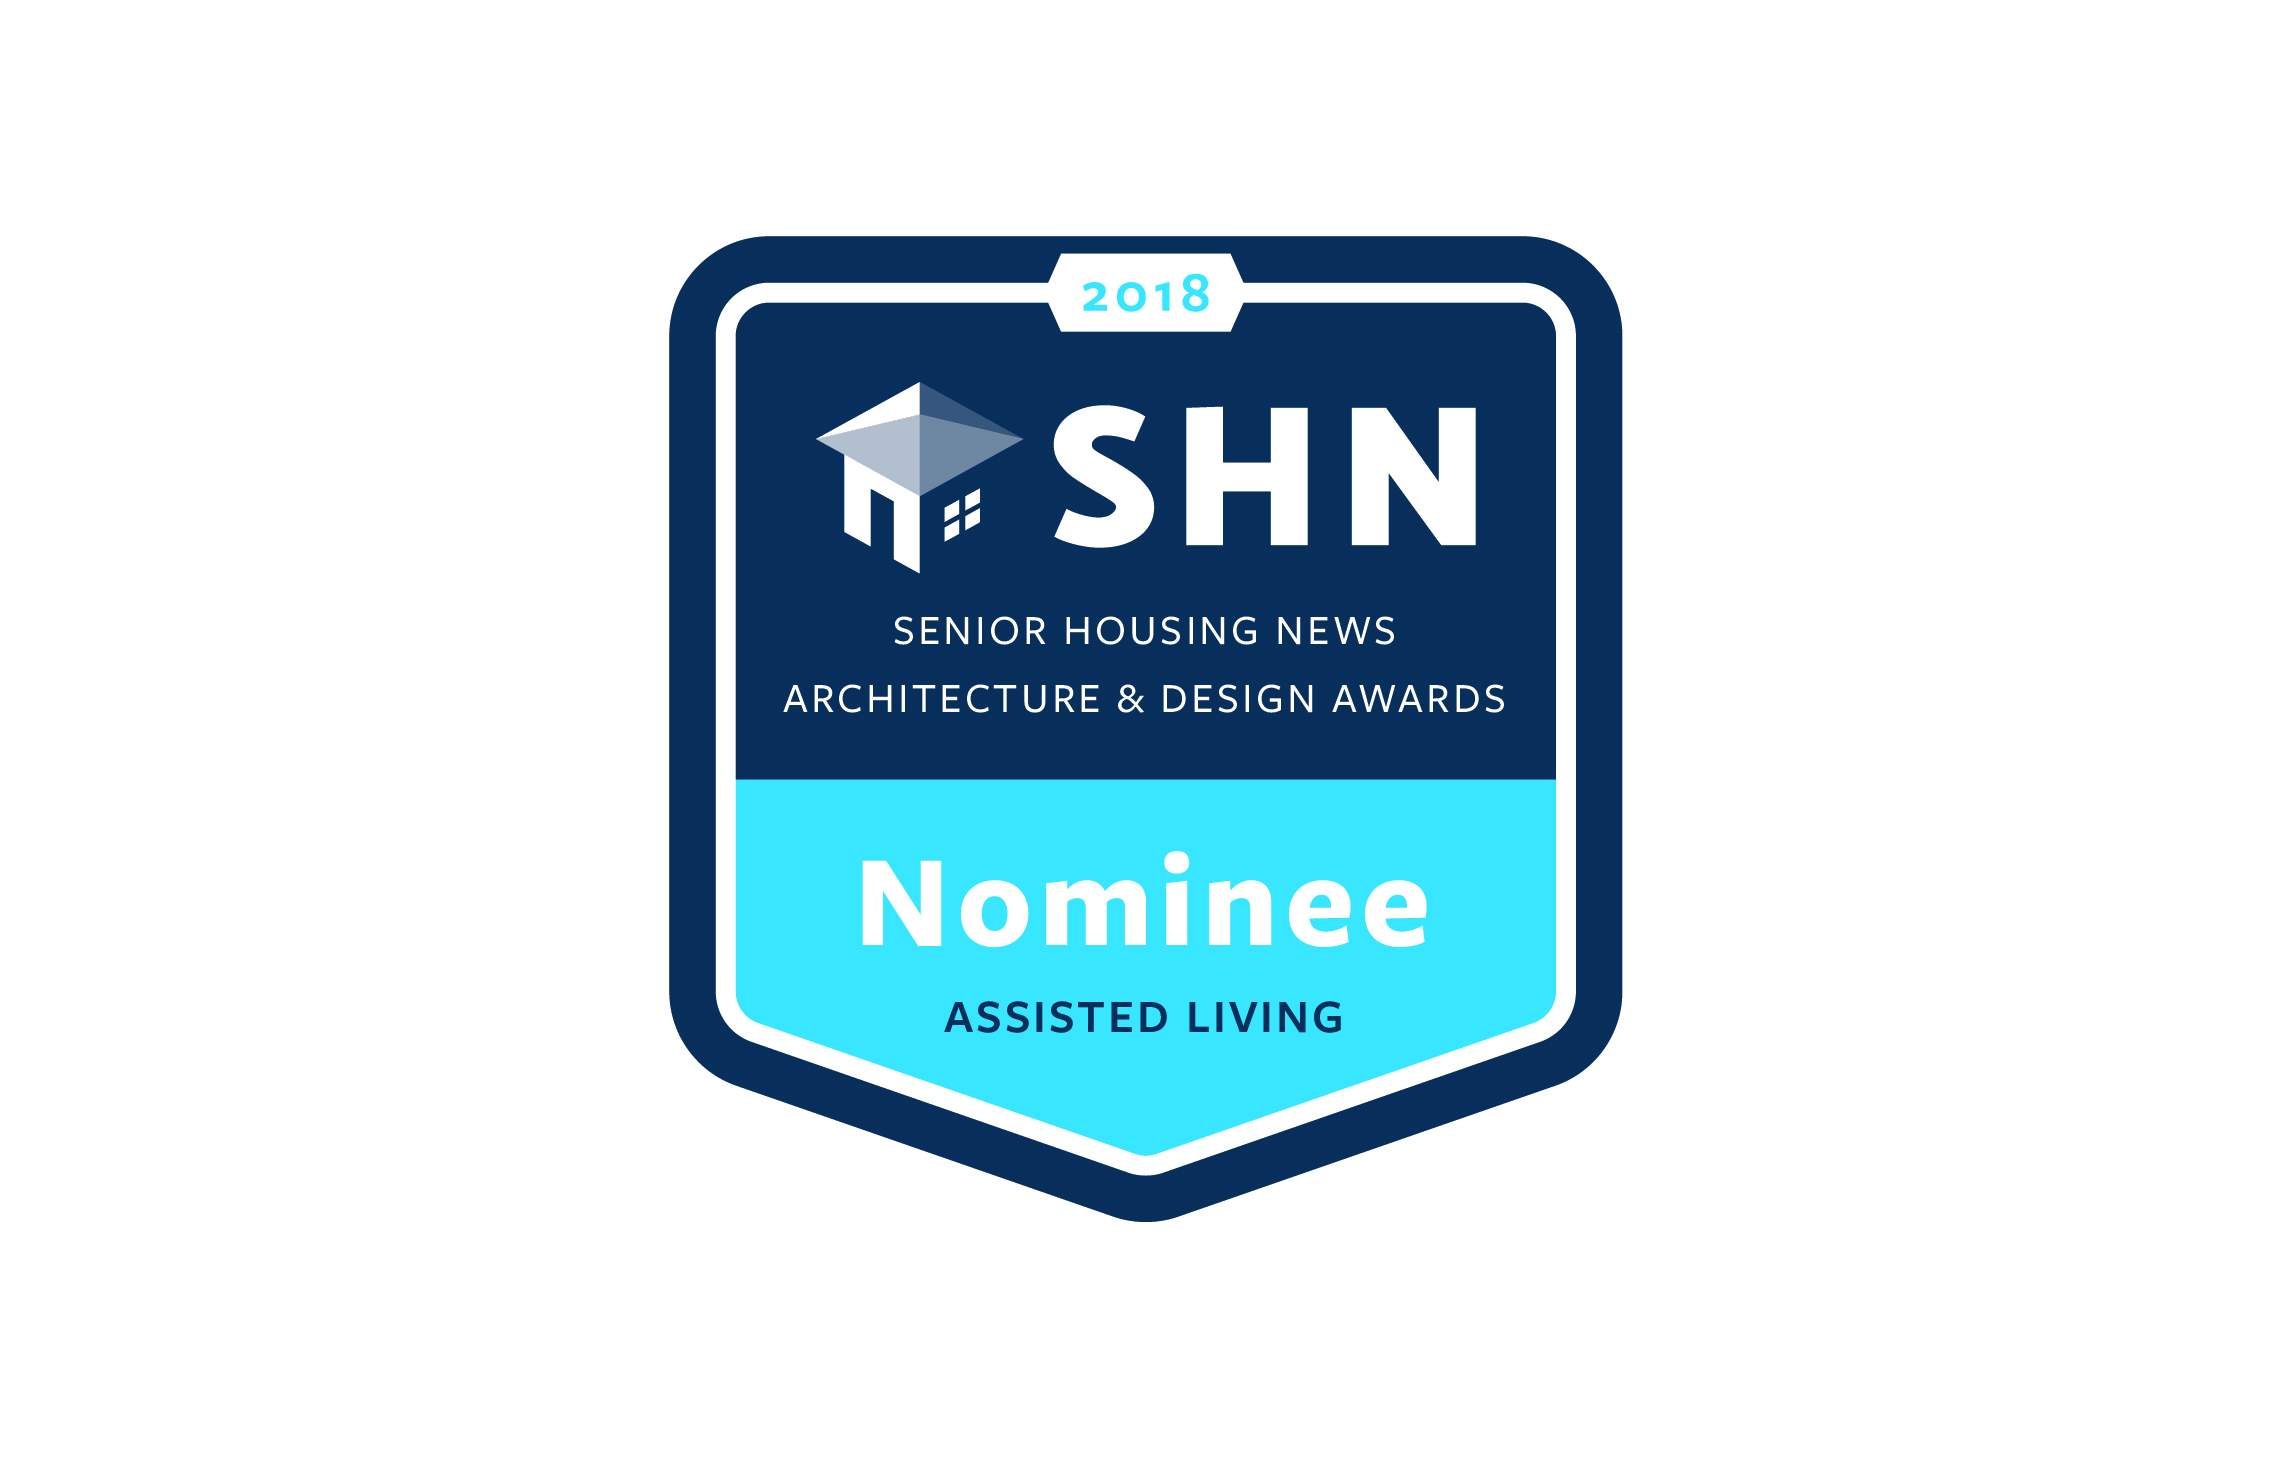 2018 SHN Architecture and Design Awards